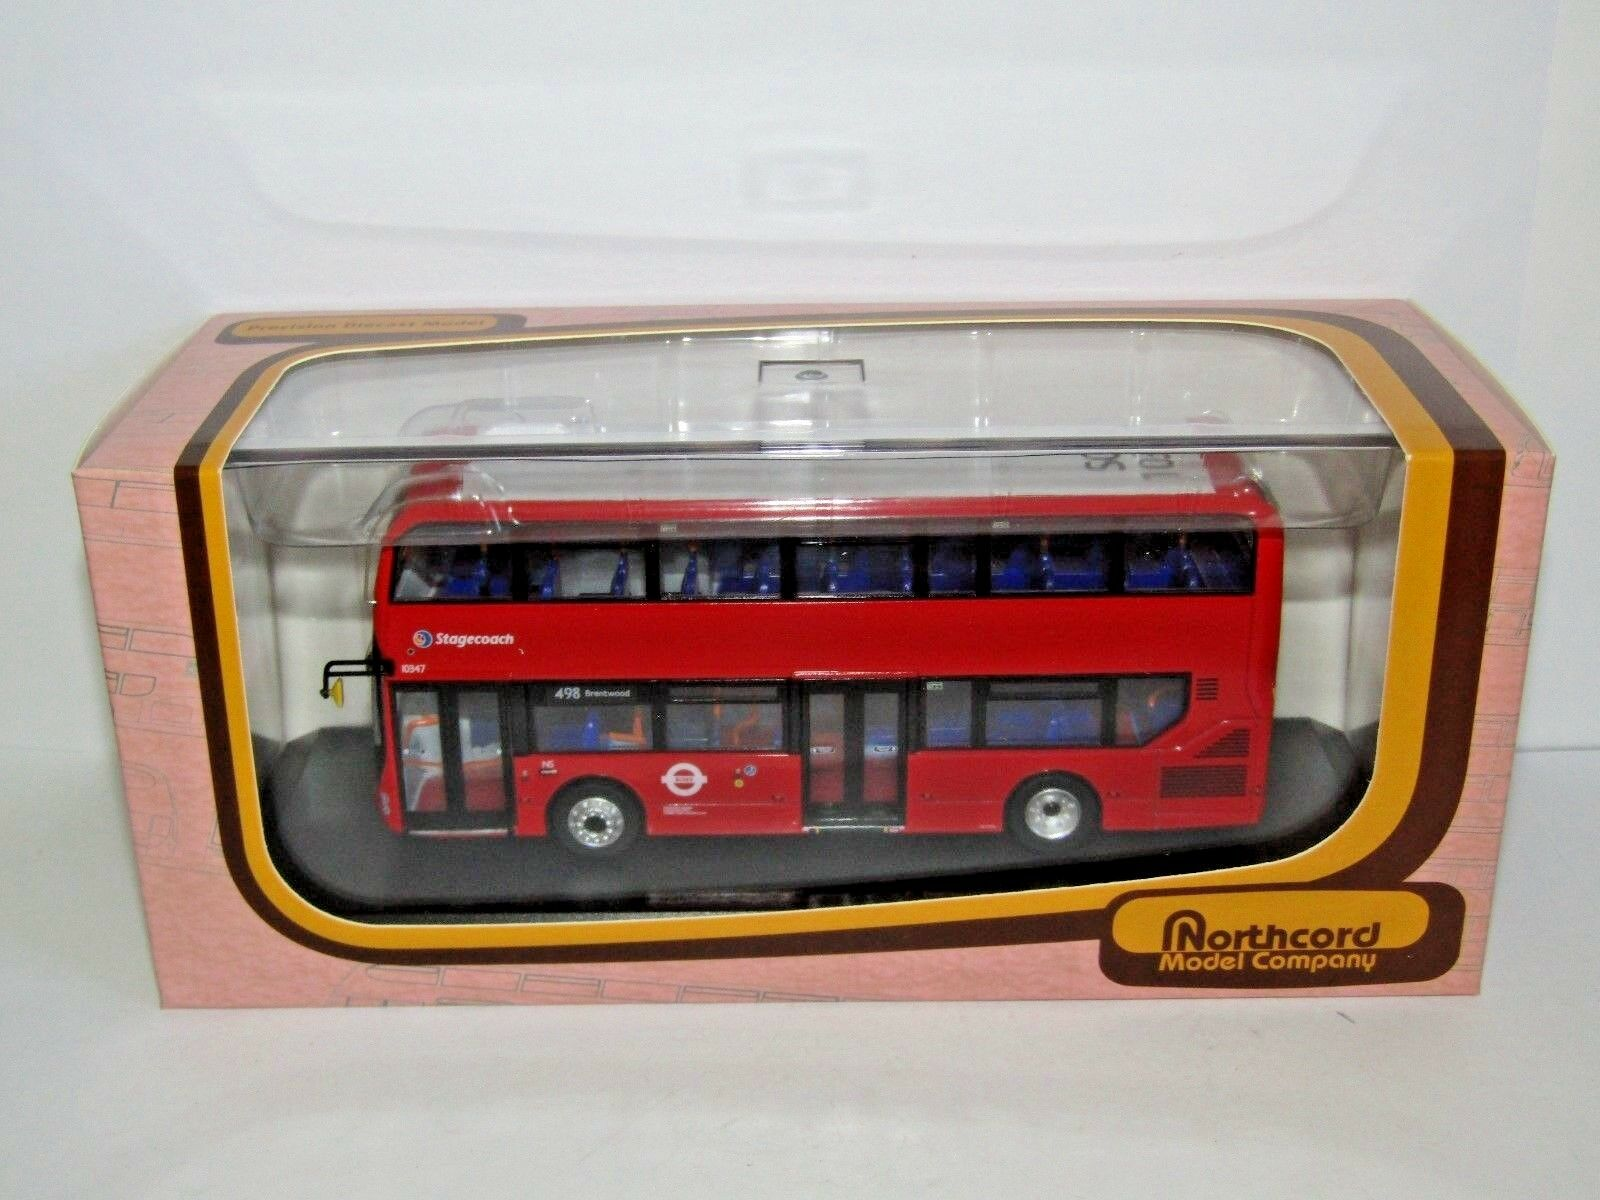 Northcord CMNL Alexander Dennis E400 OMBRE ROSSE LONDON ROUTE 498 1/76 UKBus 6503